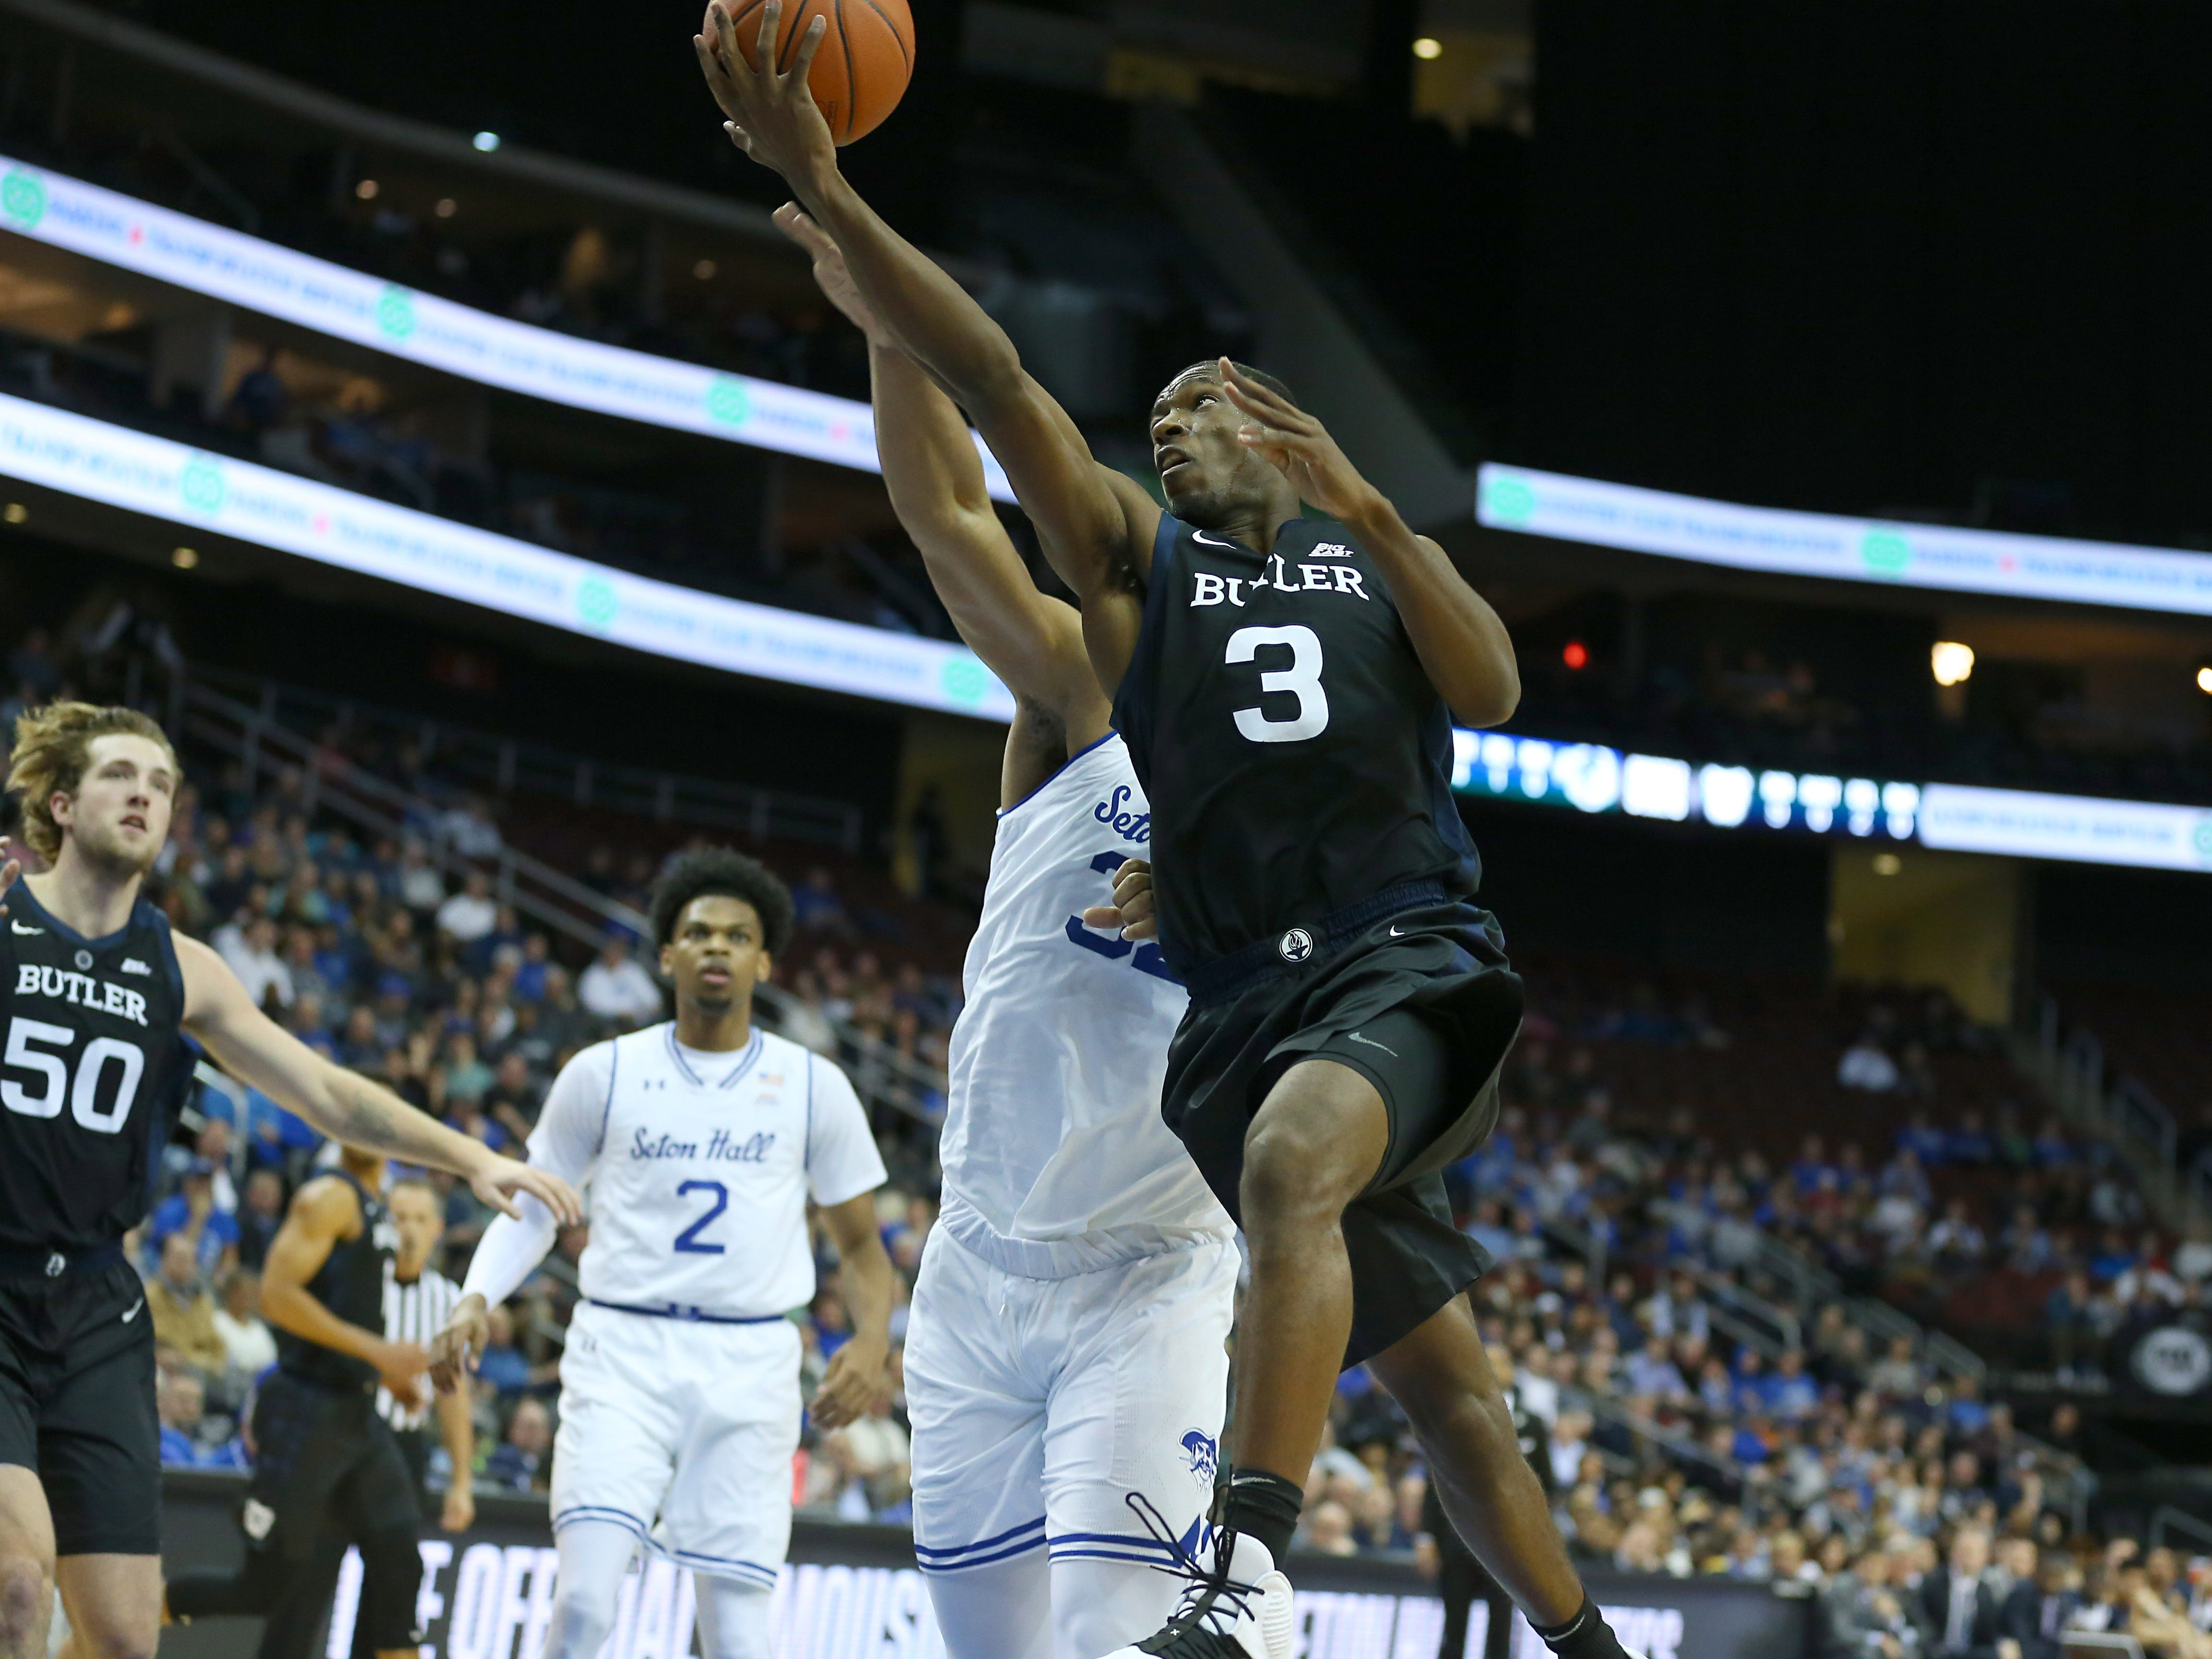 Jan 9, 2019; Newark, NJ, USA; Butler Bulldogs guard Kamar Baldwin (3) lays the ball as Seton Hall Pirates forward Darnell Brodie (32) defends during the first half at Prudential Center.